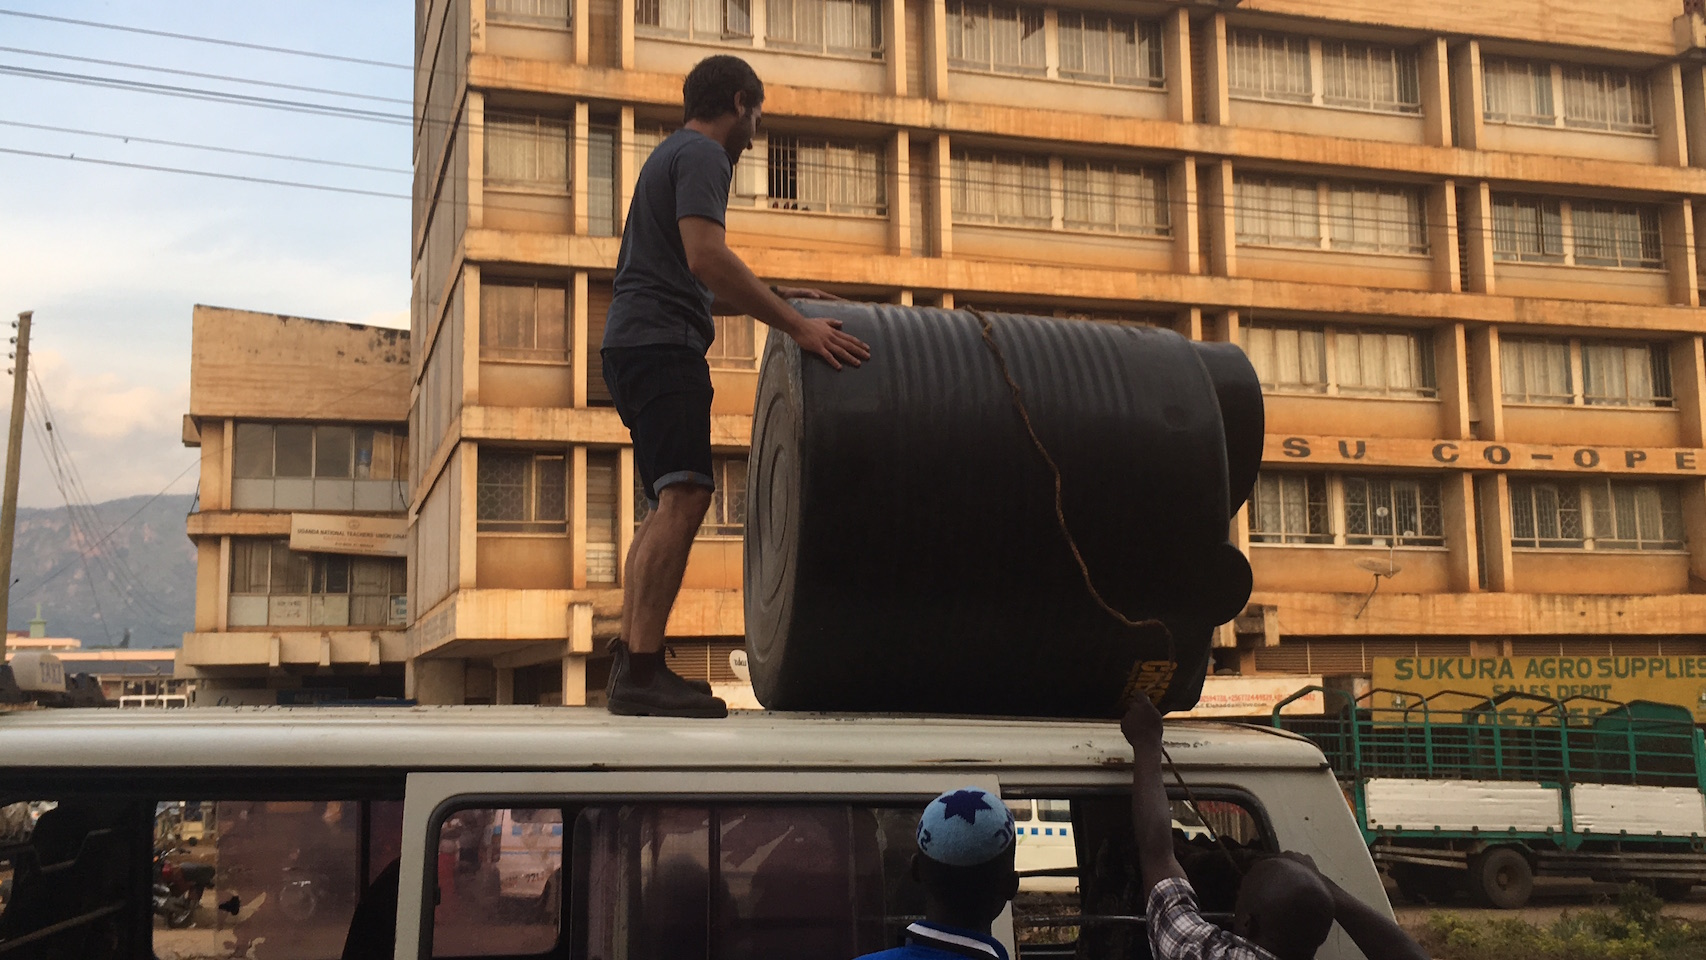 Transporting a 1000 Litre water tank used for rain catchment in our agricultural program.